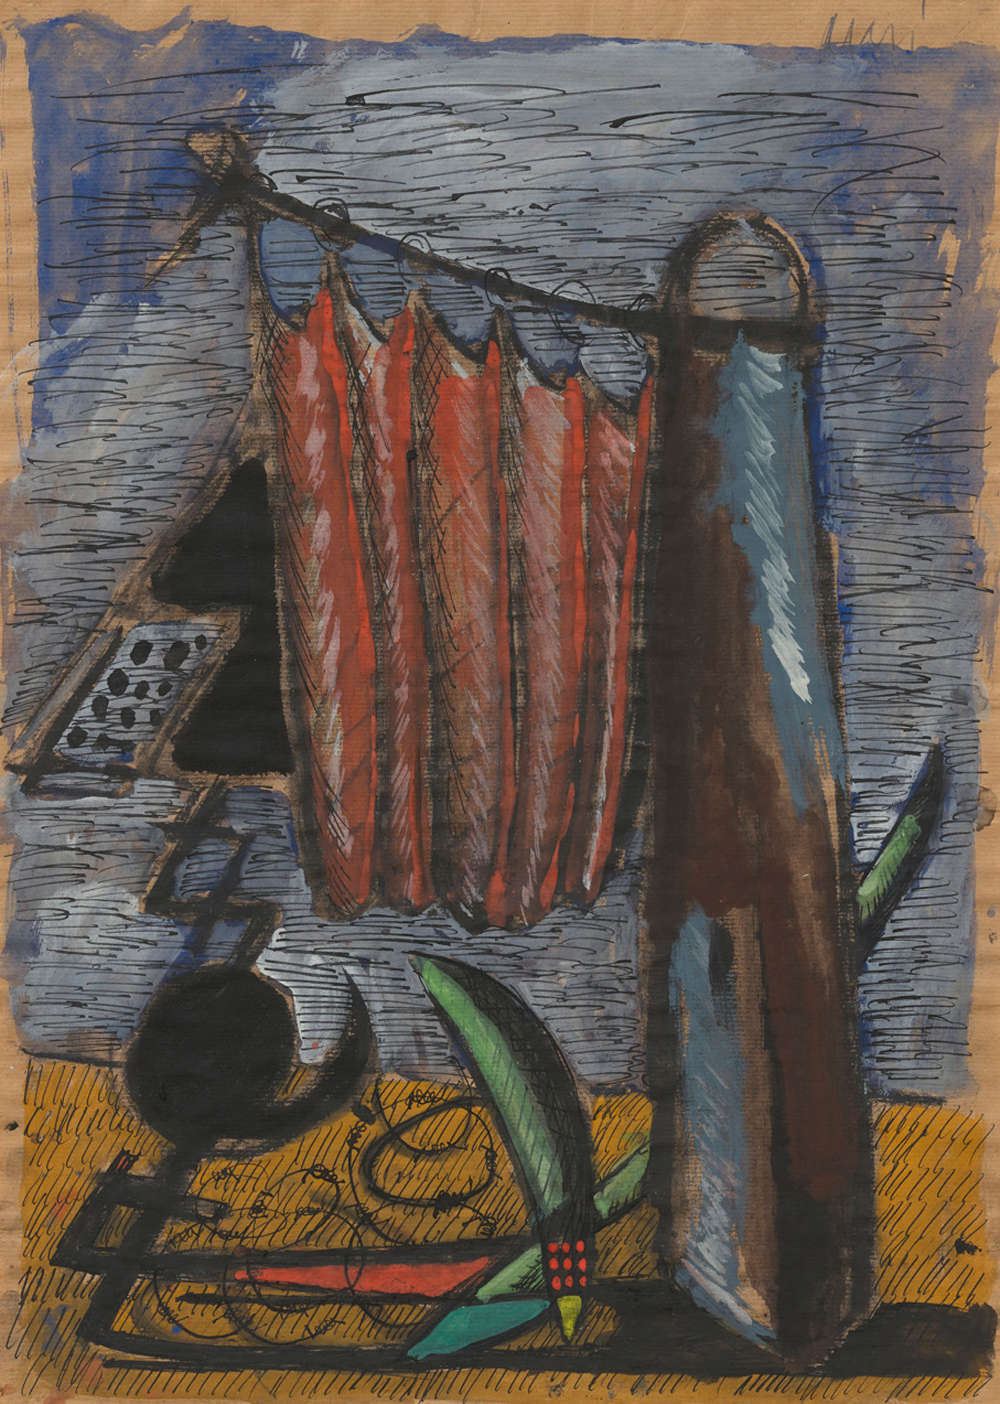 Markus Lüpertz, Untitled (Monument, dithyram-ch) (Untitled [Monument, dithyram-ch]), 1976. Charcoal, ink, gouache, oil on paper 24 3/4 x 17 3/4 inches 63 x 45 cm